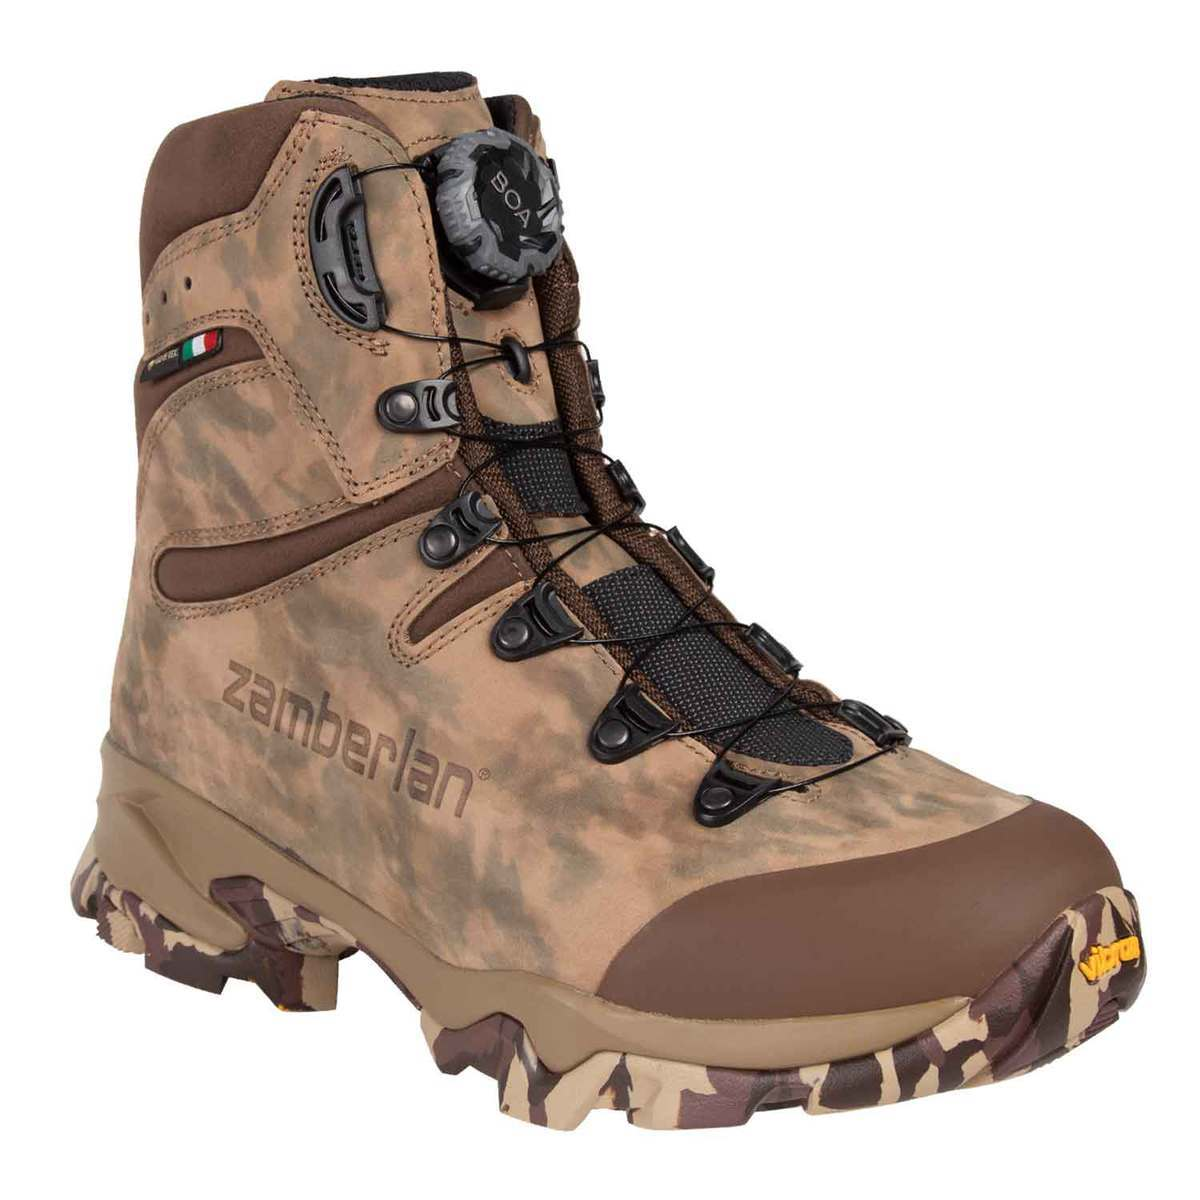 Zamberlan Men's Lynx GORE-TEX RR BOA Uninsulated Hunting Boots